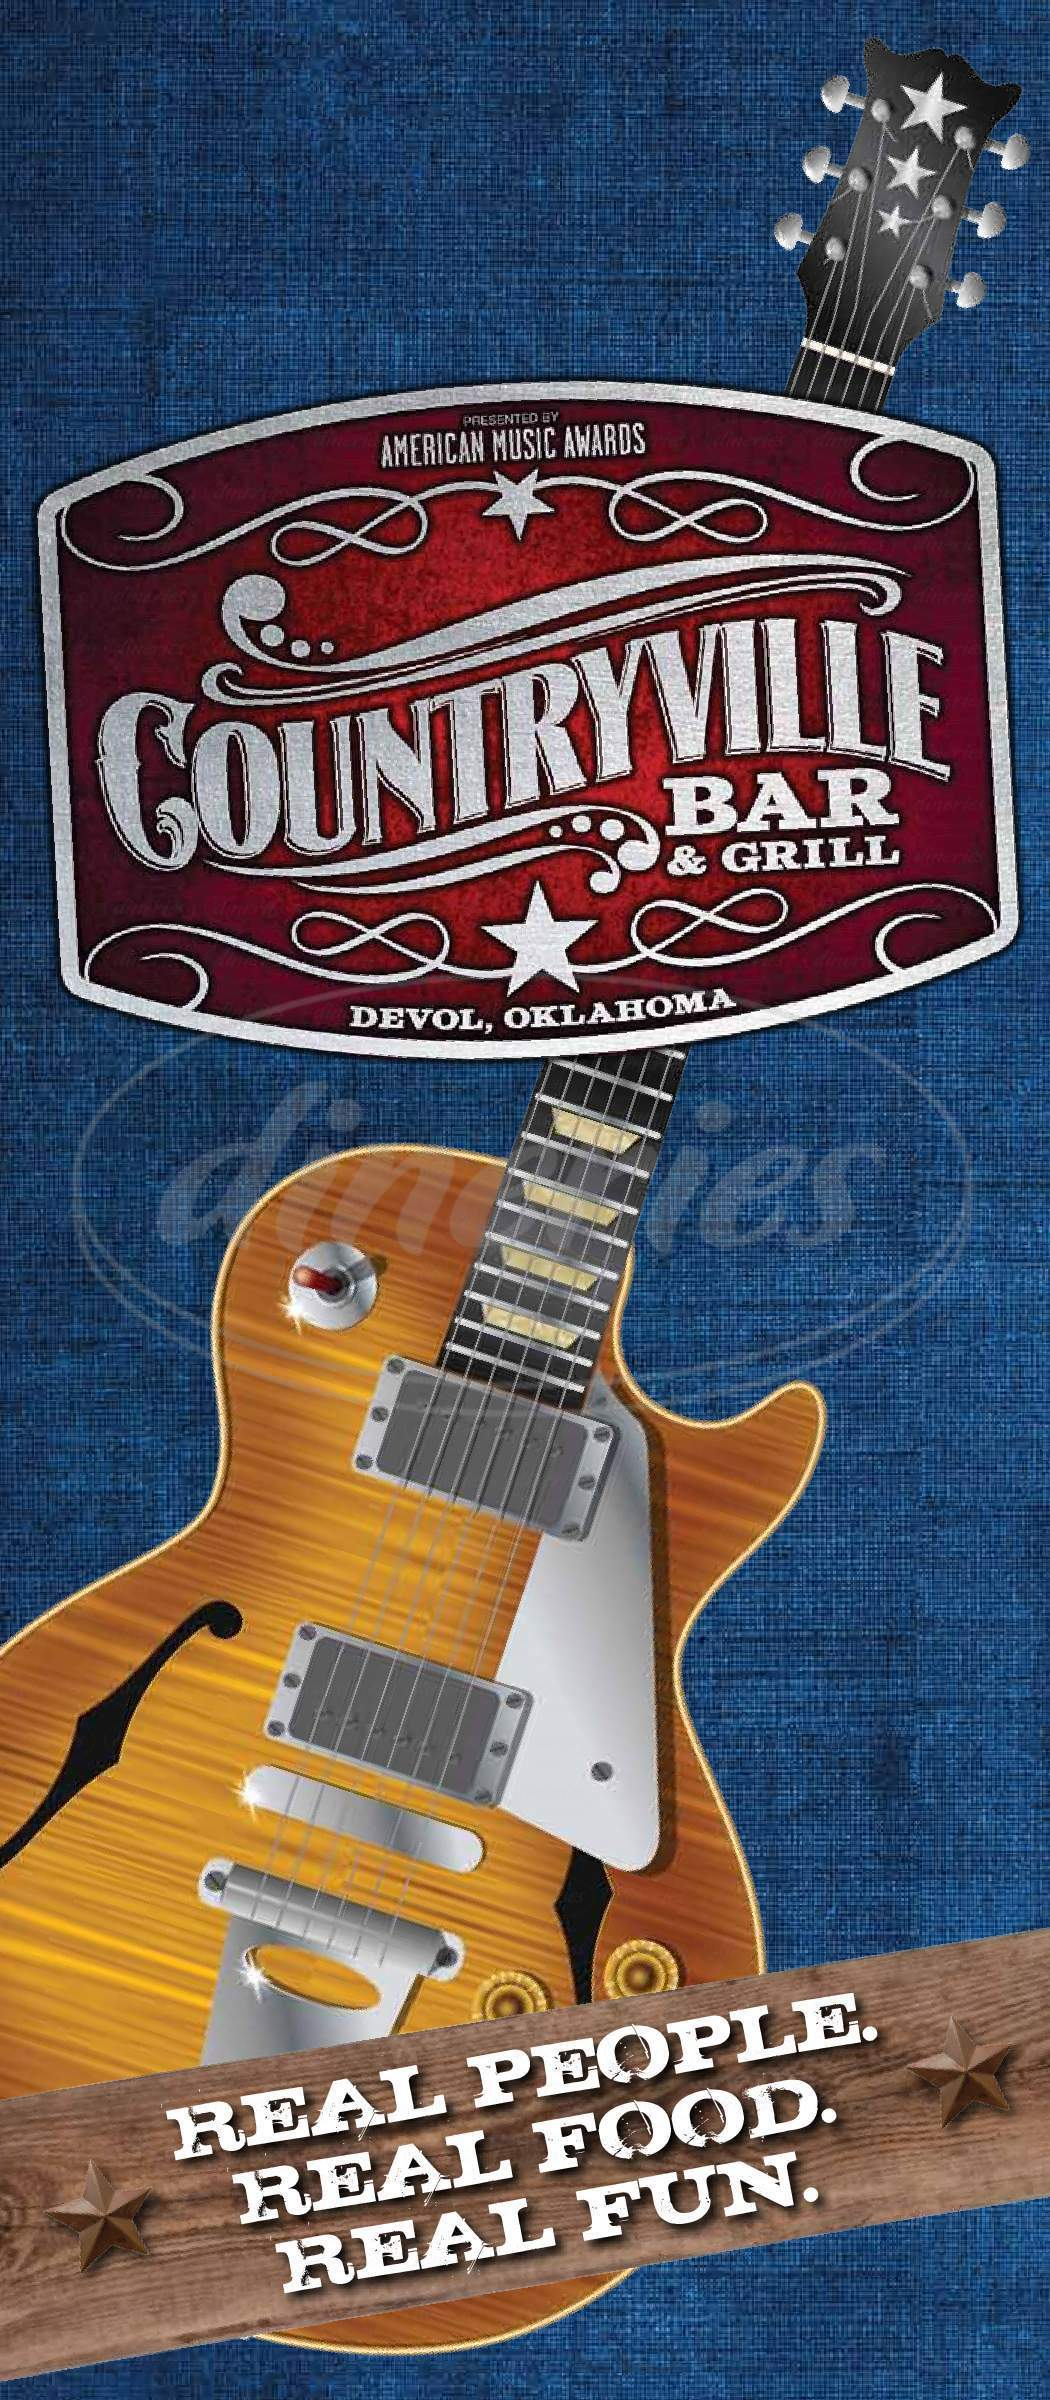 menu for Countryville Bar & Grill